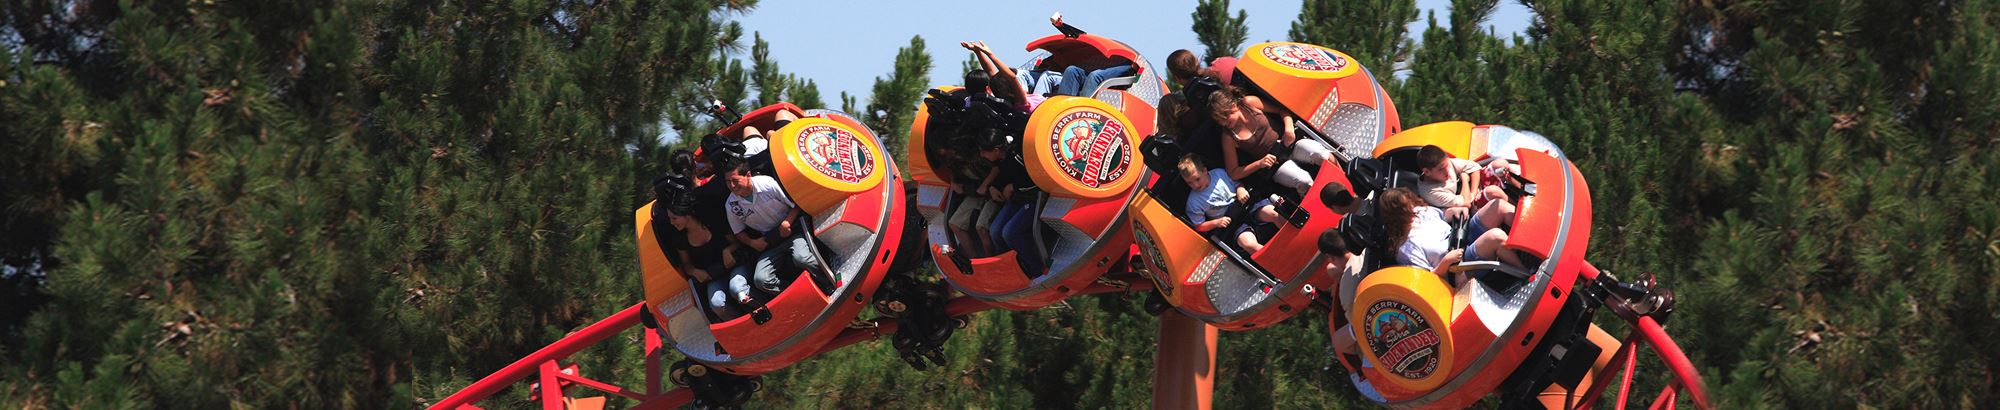 Riders on Sierra Sidewinder at Knott's Berry Farm in Buena Park, CA